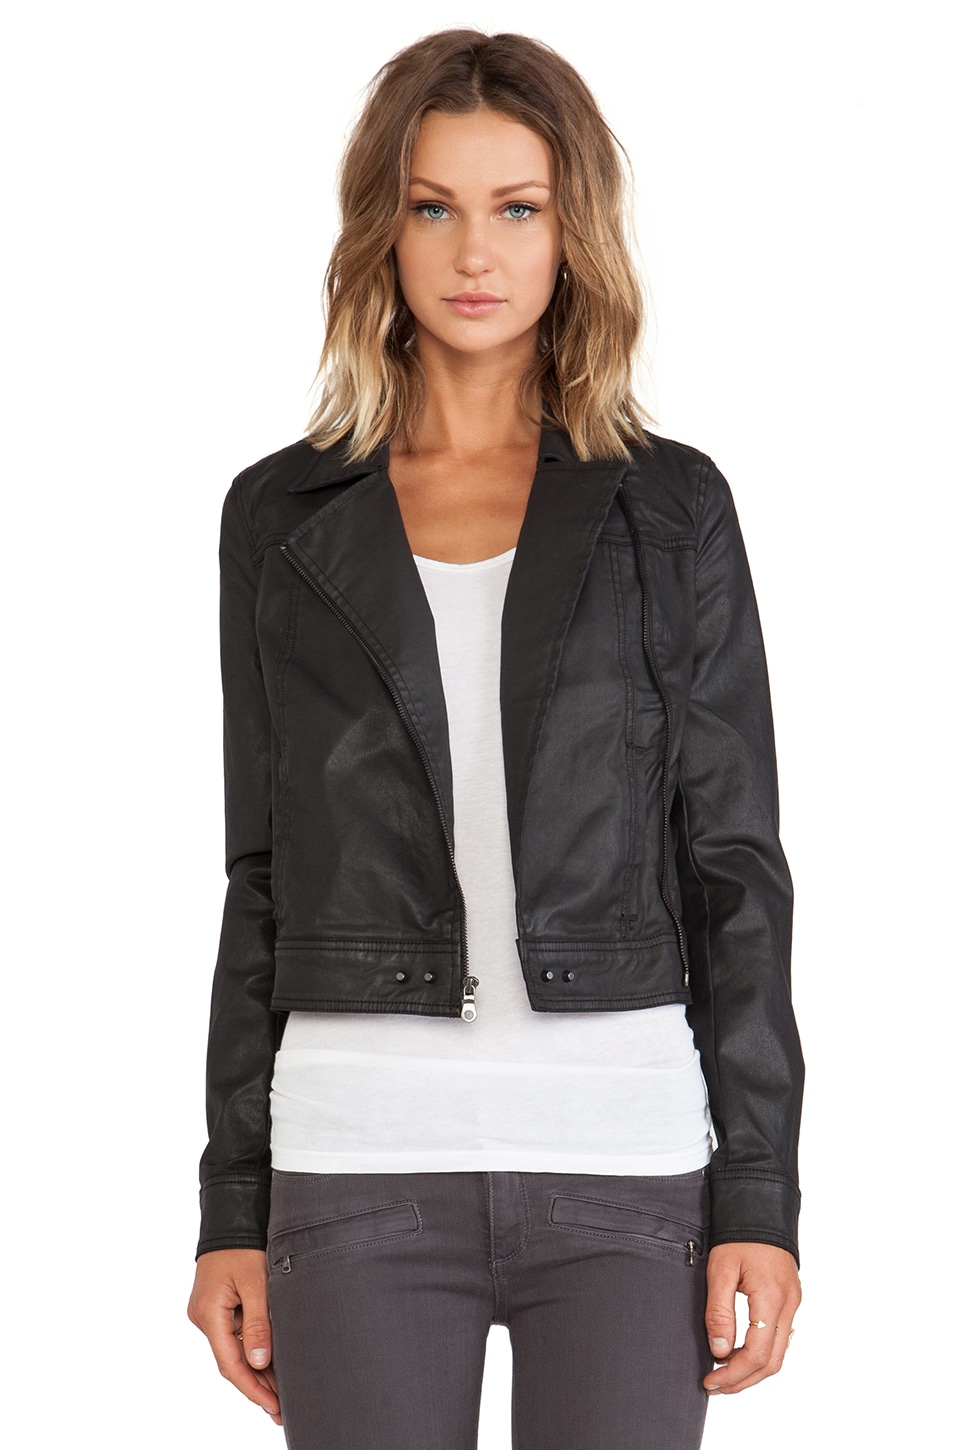 Paige Denim Brooklyn Jacket in Rebel Black